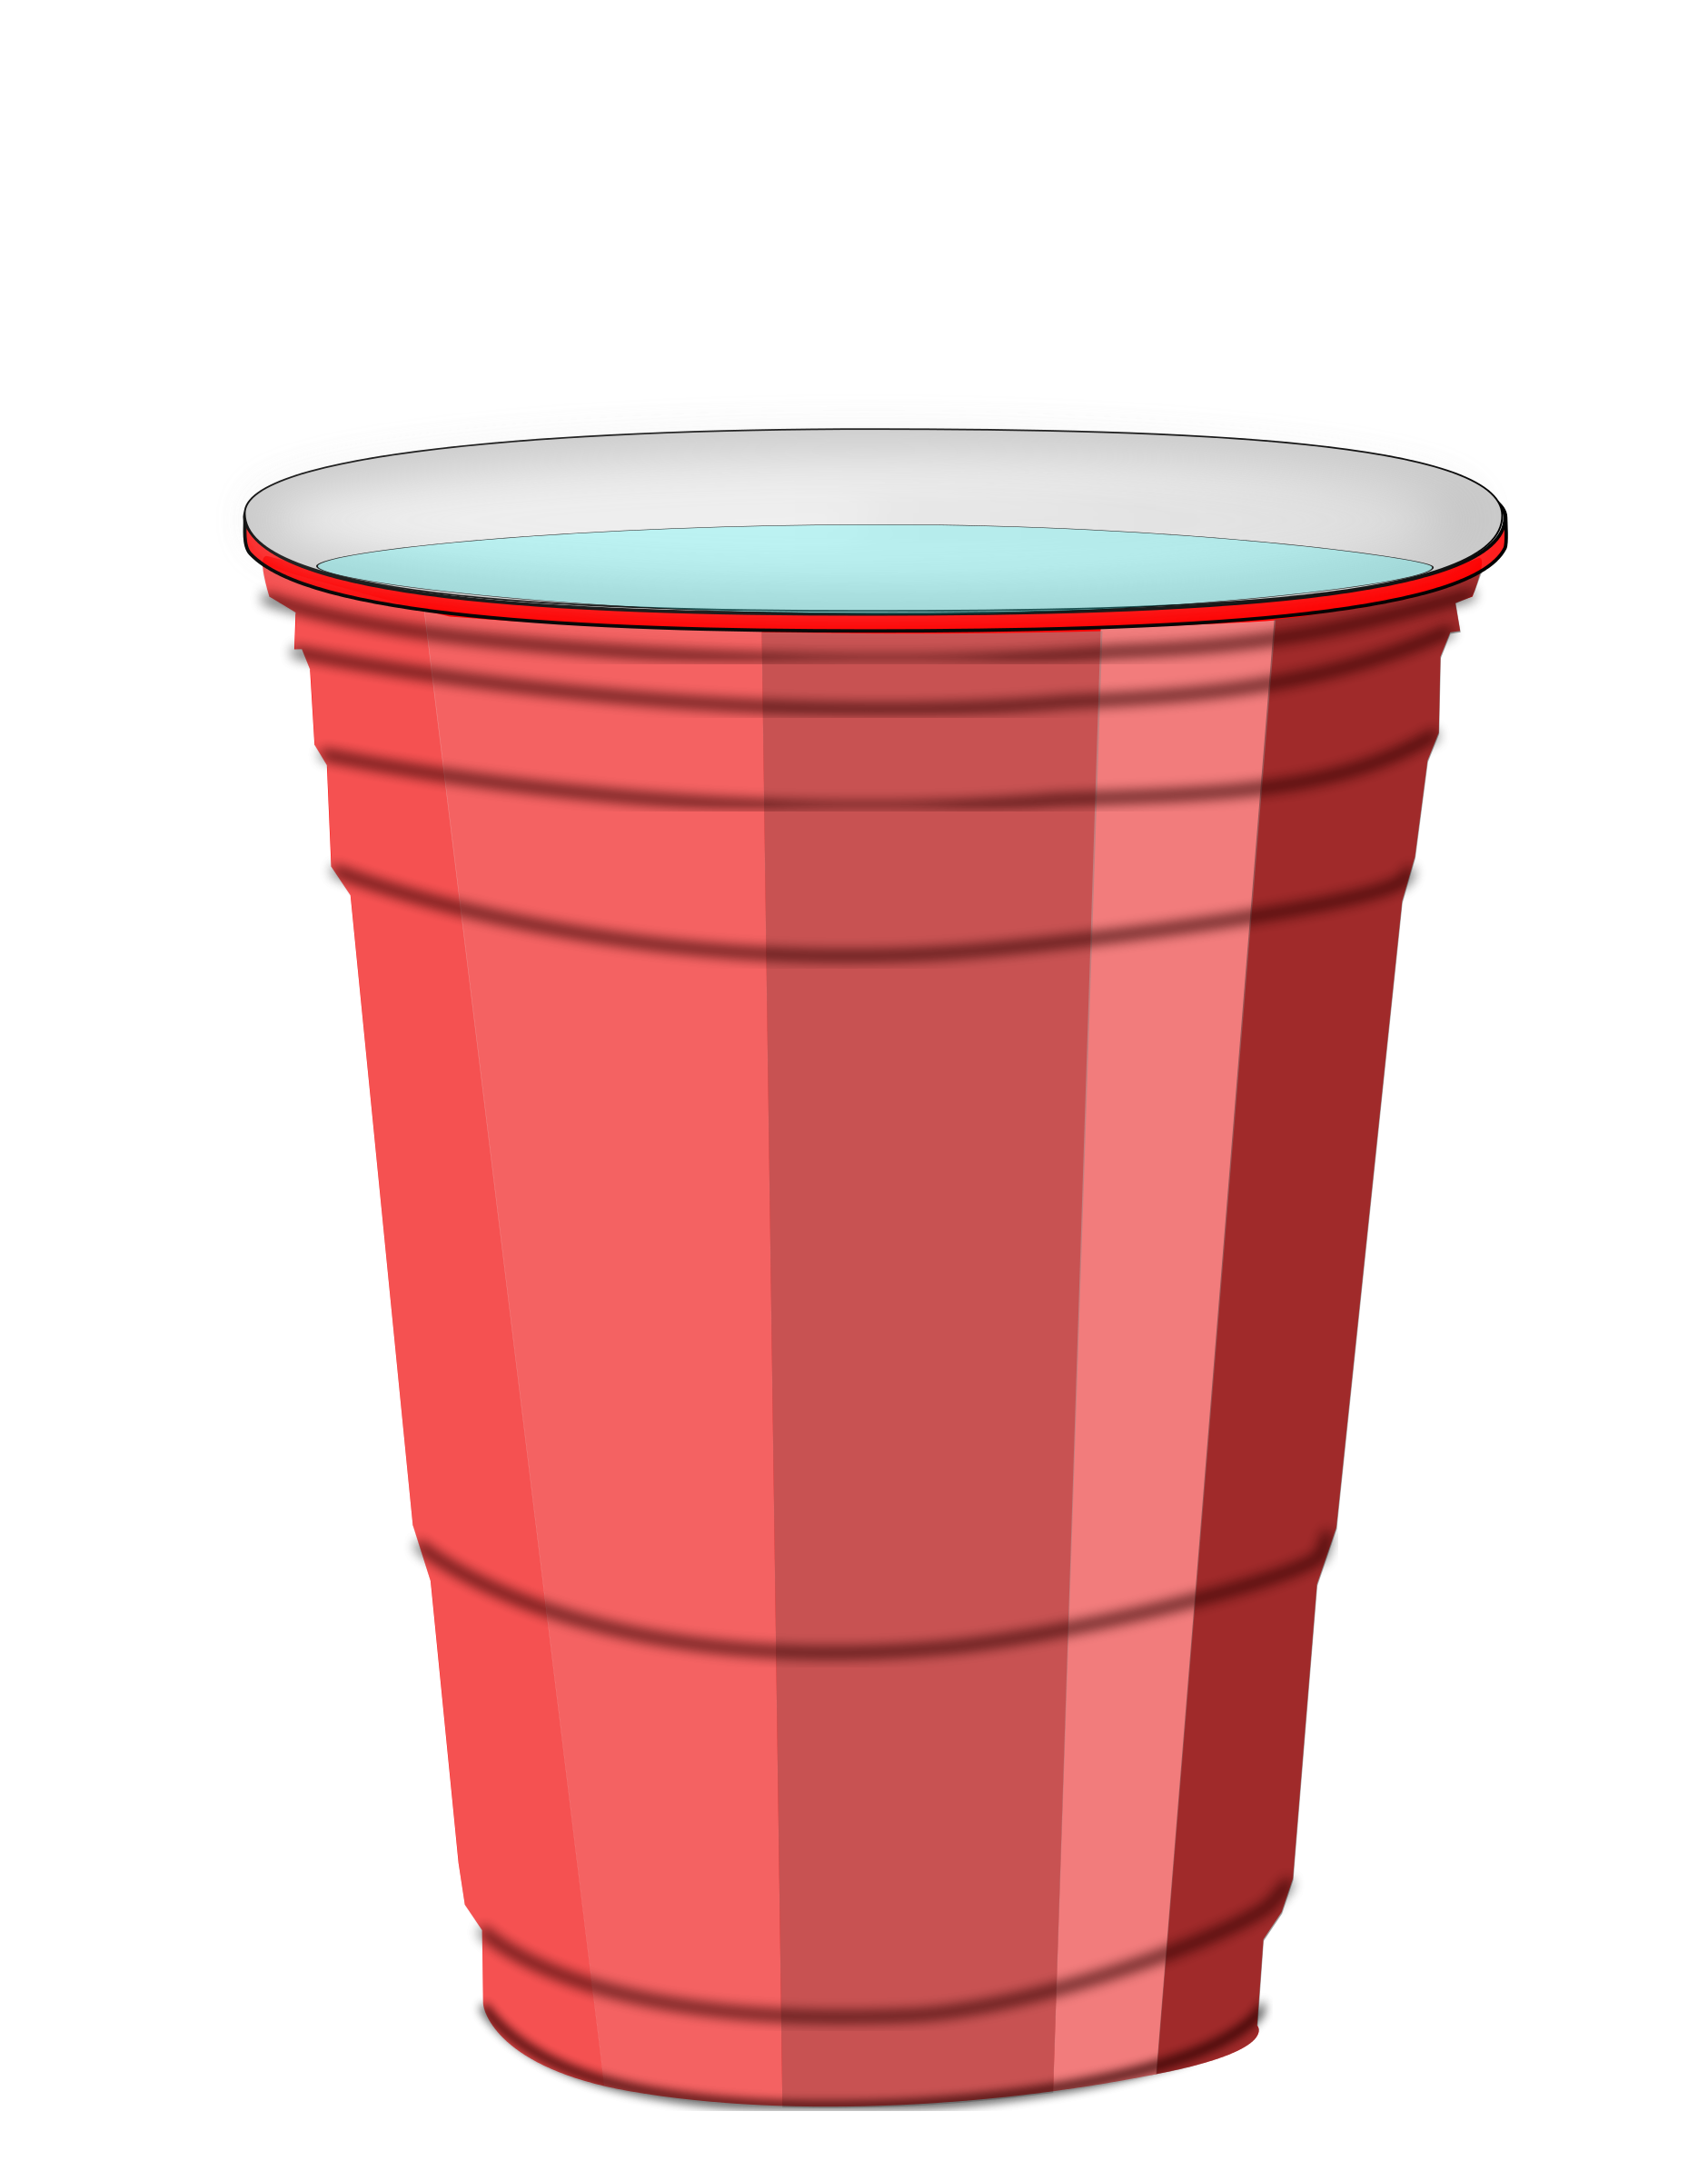 Water clipart soda. Cup panda free images